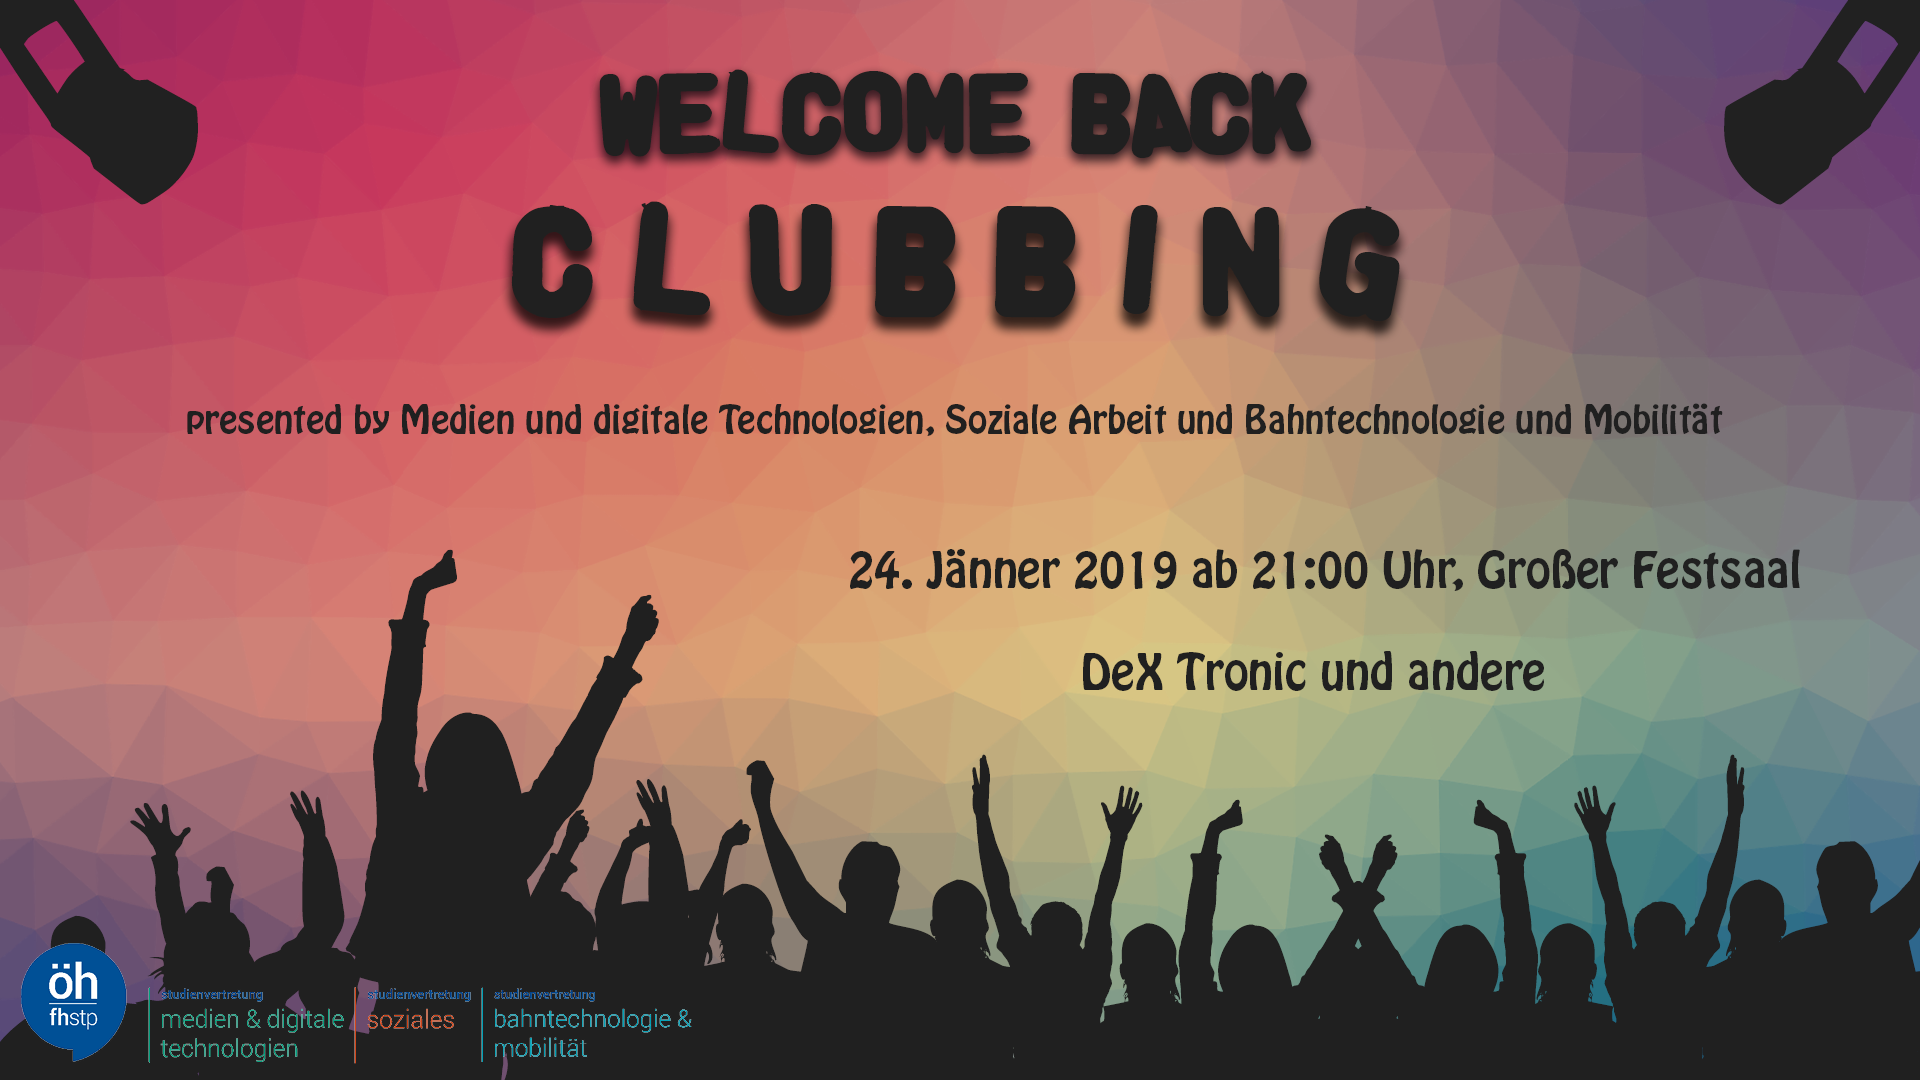 Welcome Back Clubbing